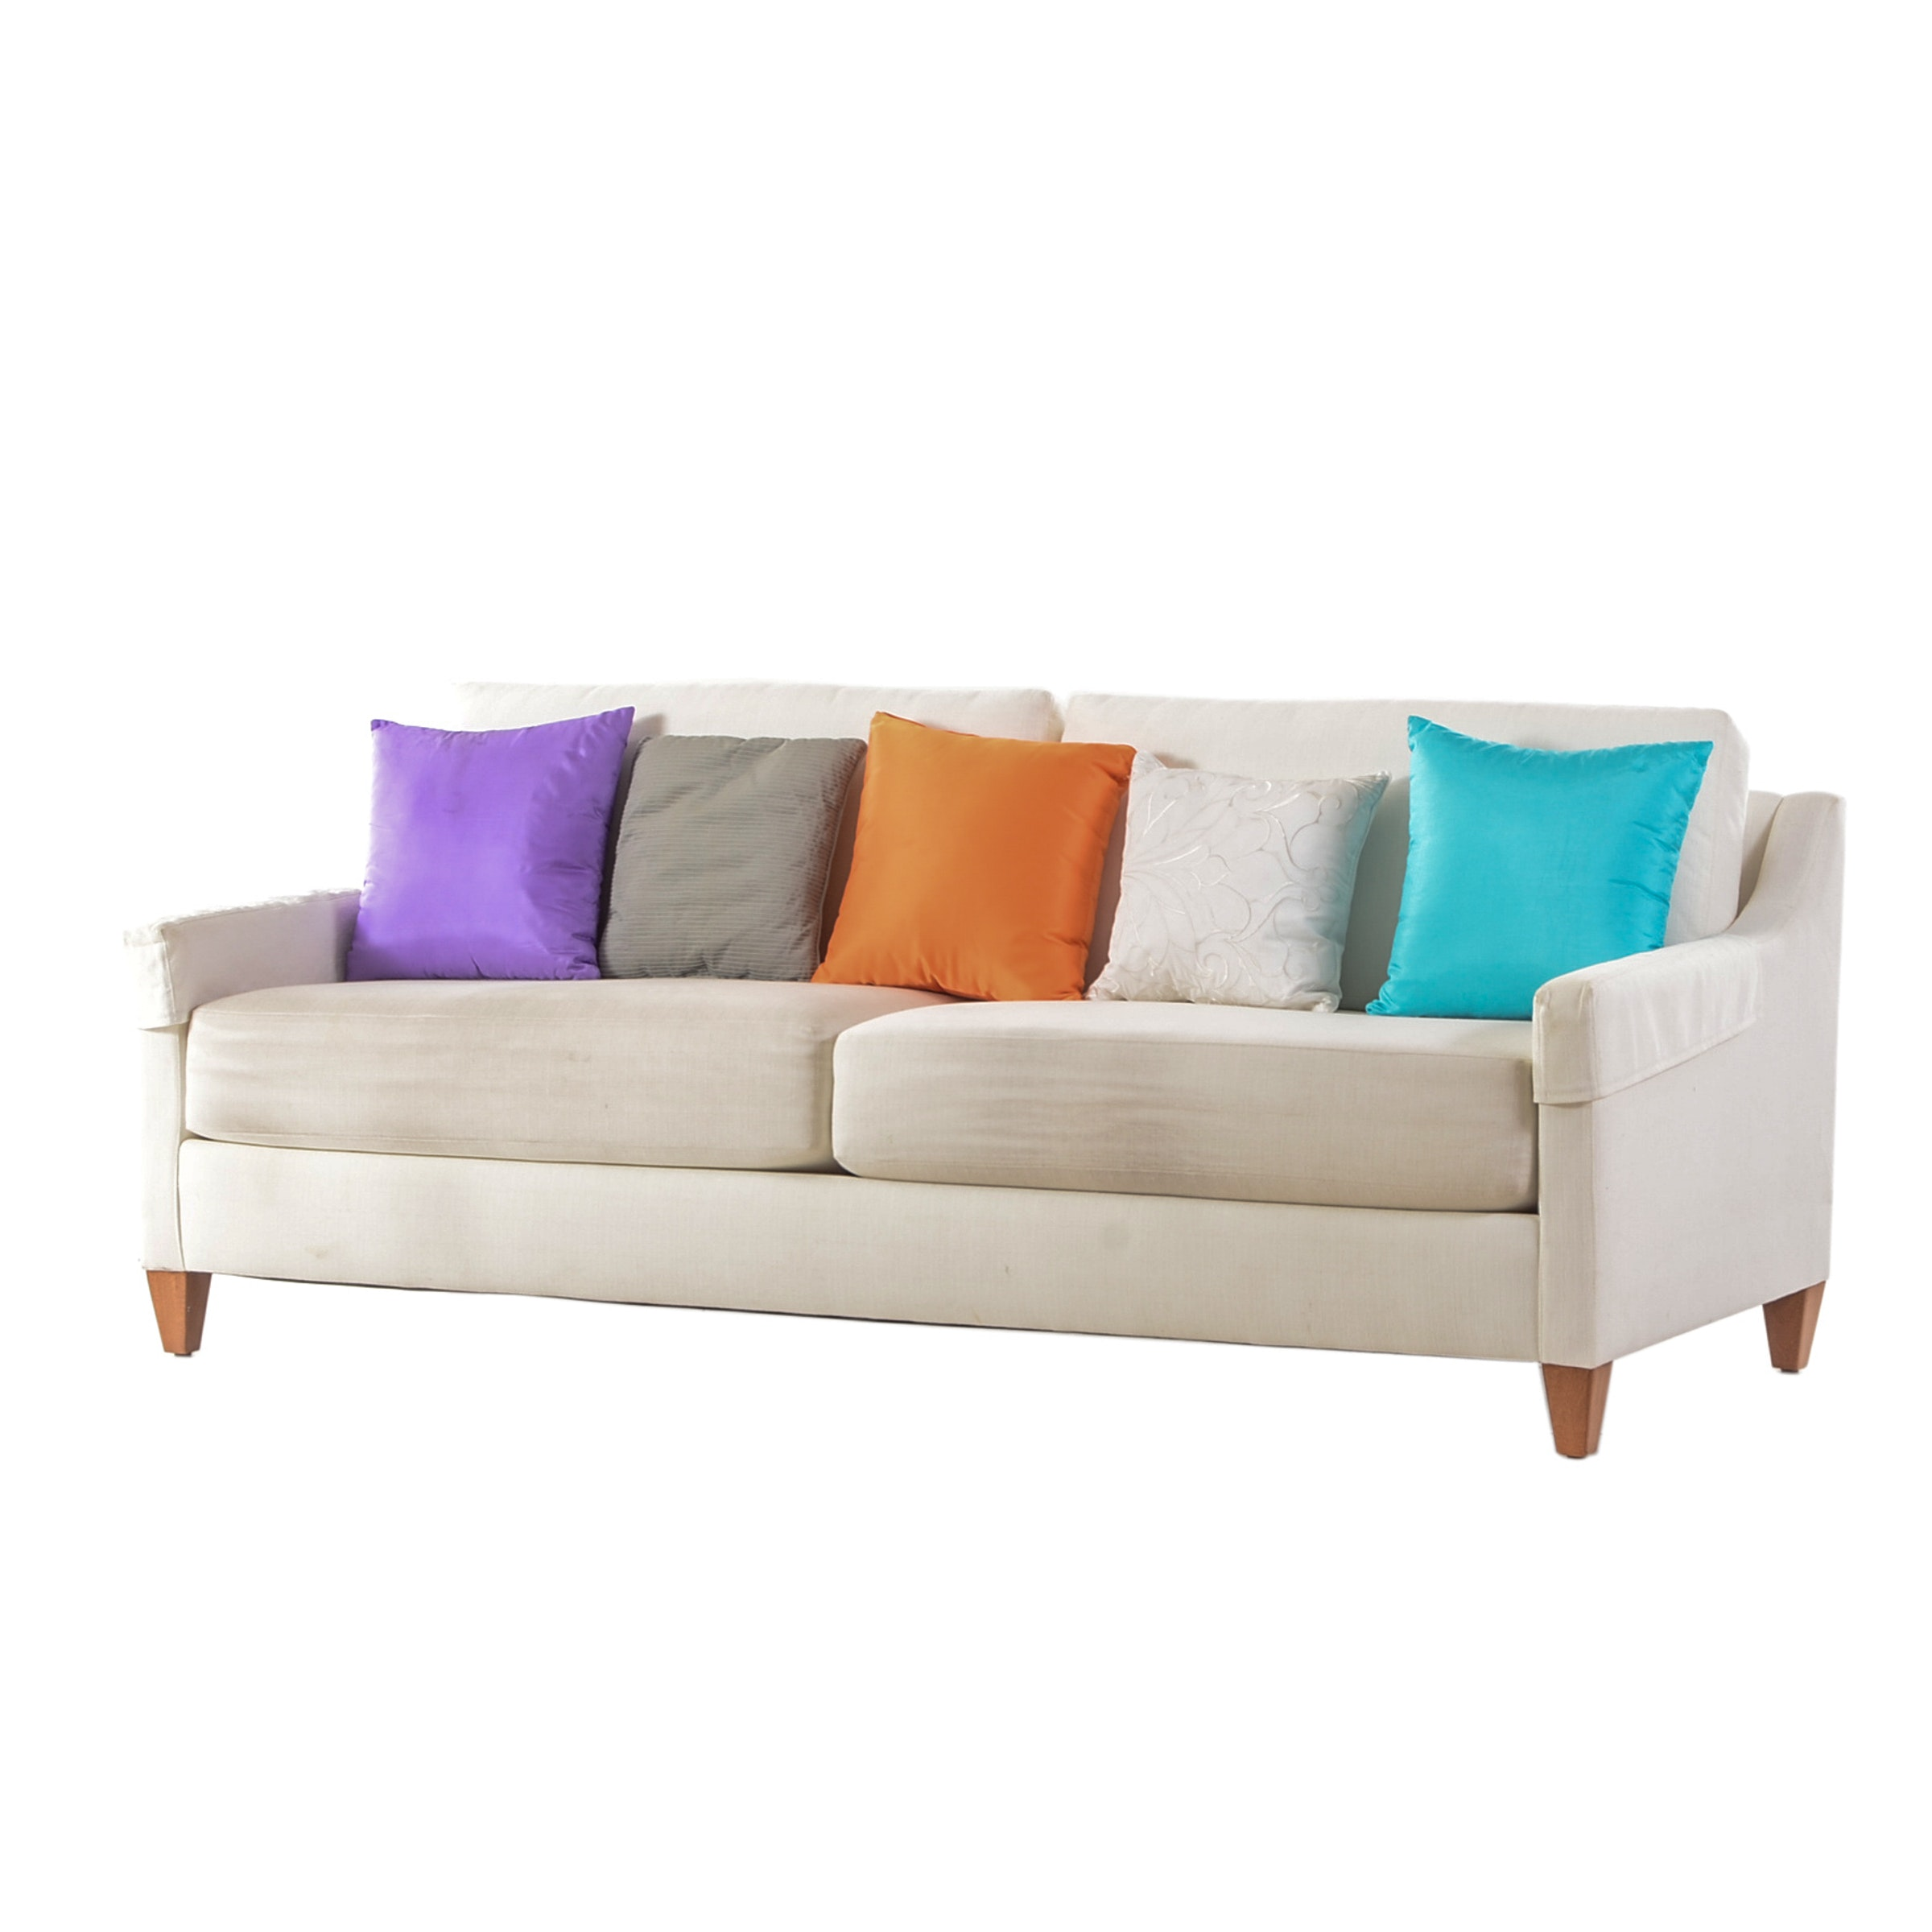 Upholstered Ethan Allen Sofa with Accent Pillows